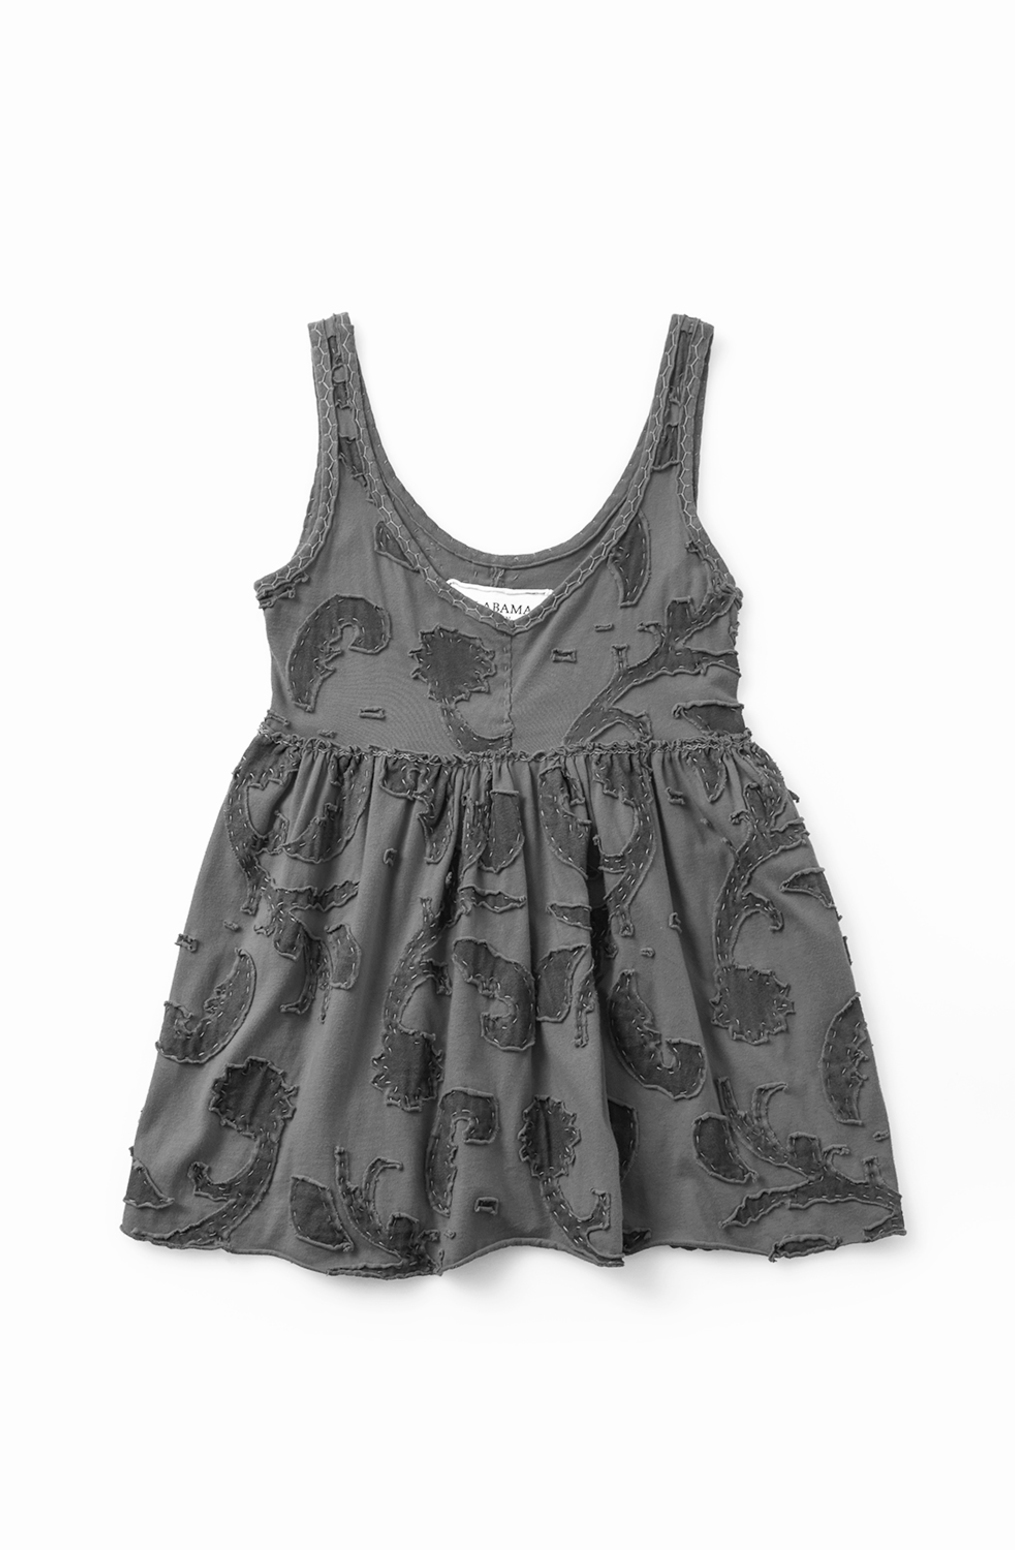 Fitted babydoll top   paisley   negative reverse   carmine   11687   abraham rowe 1   b w low res edit